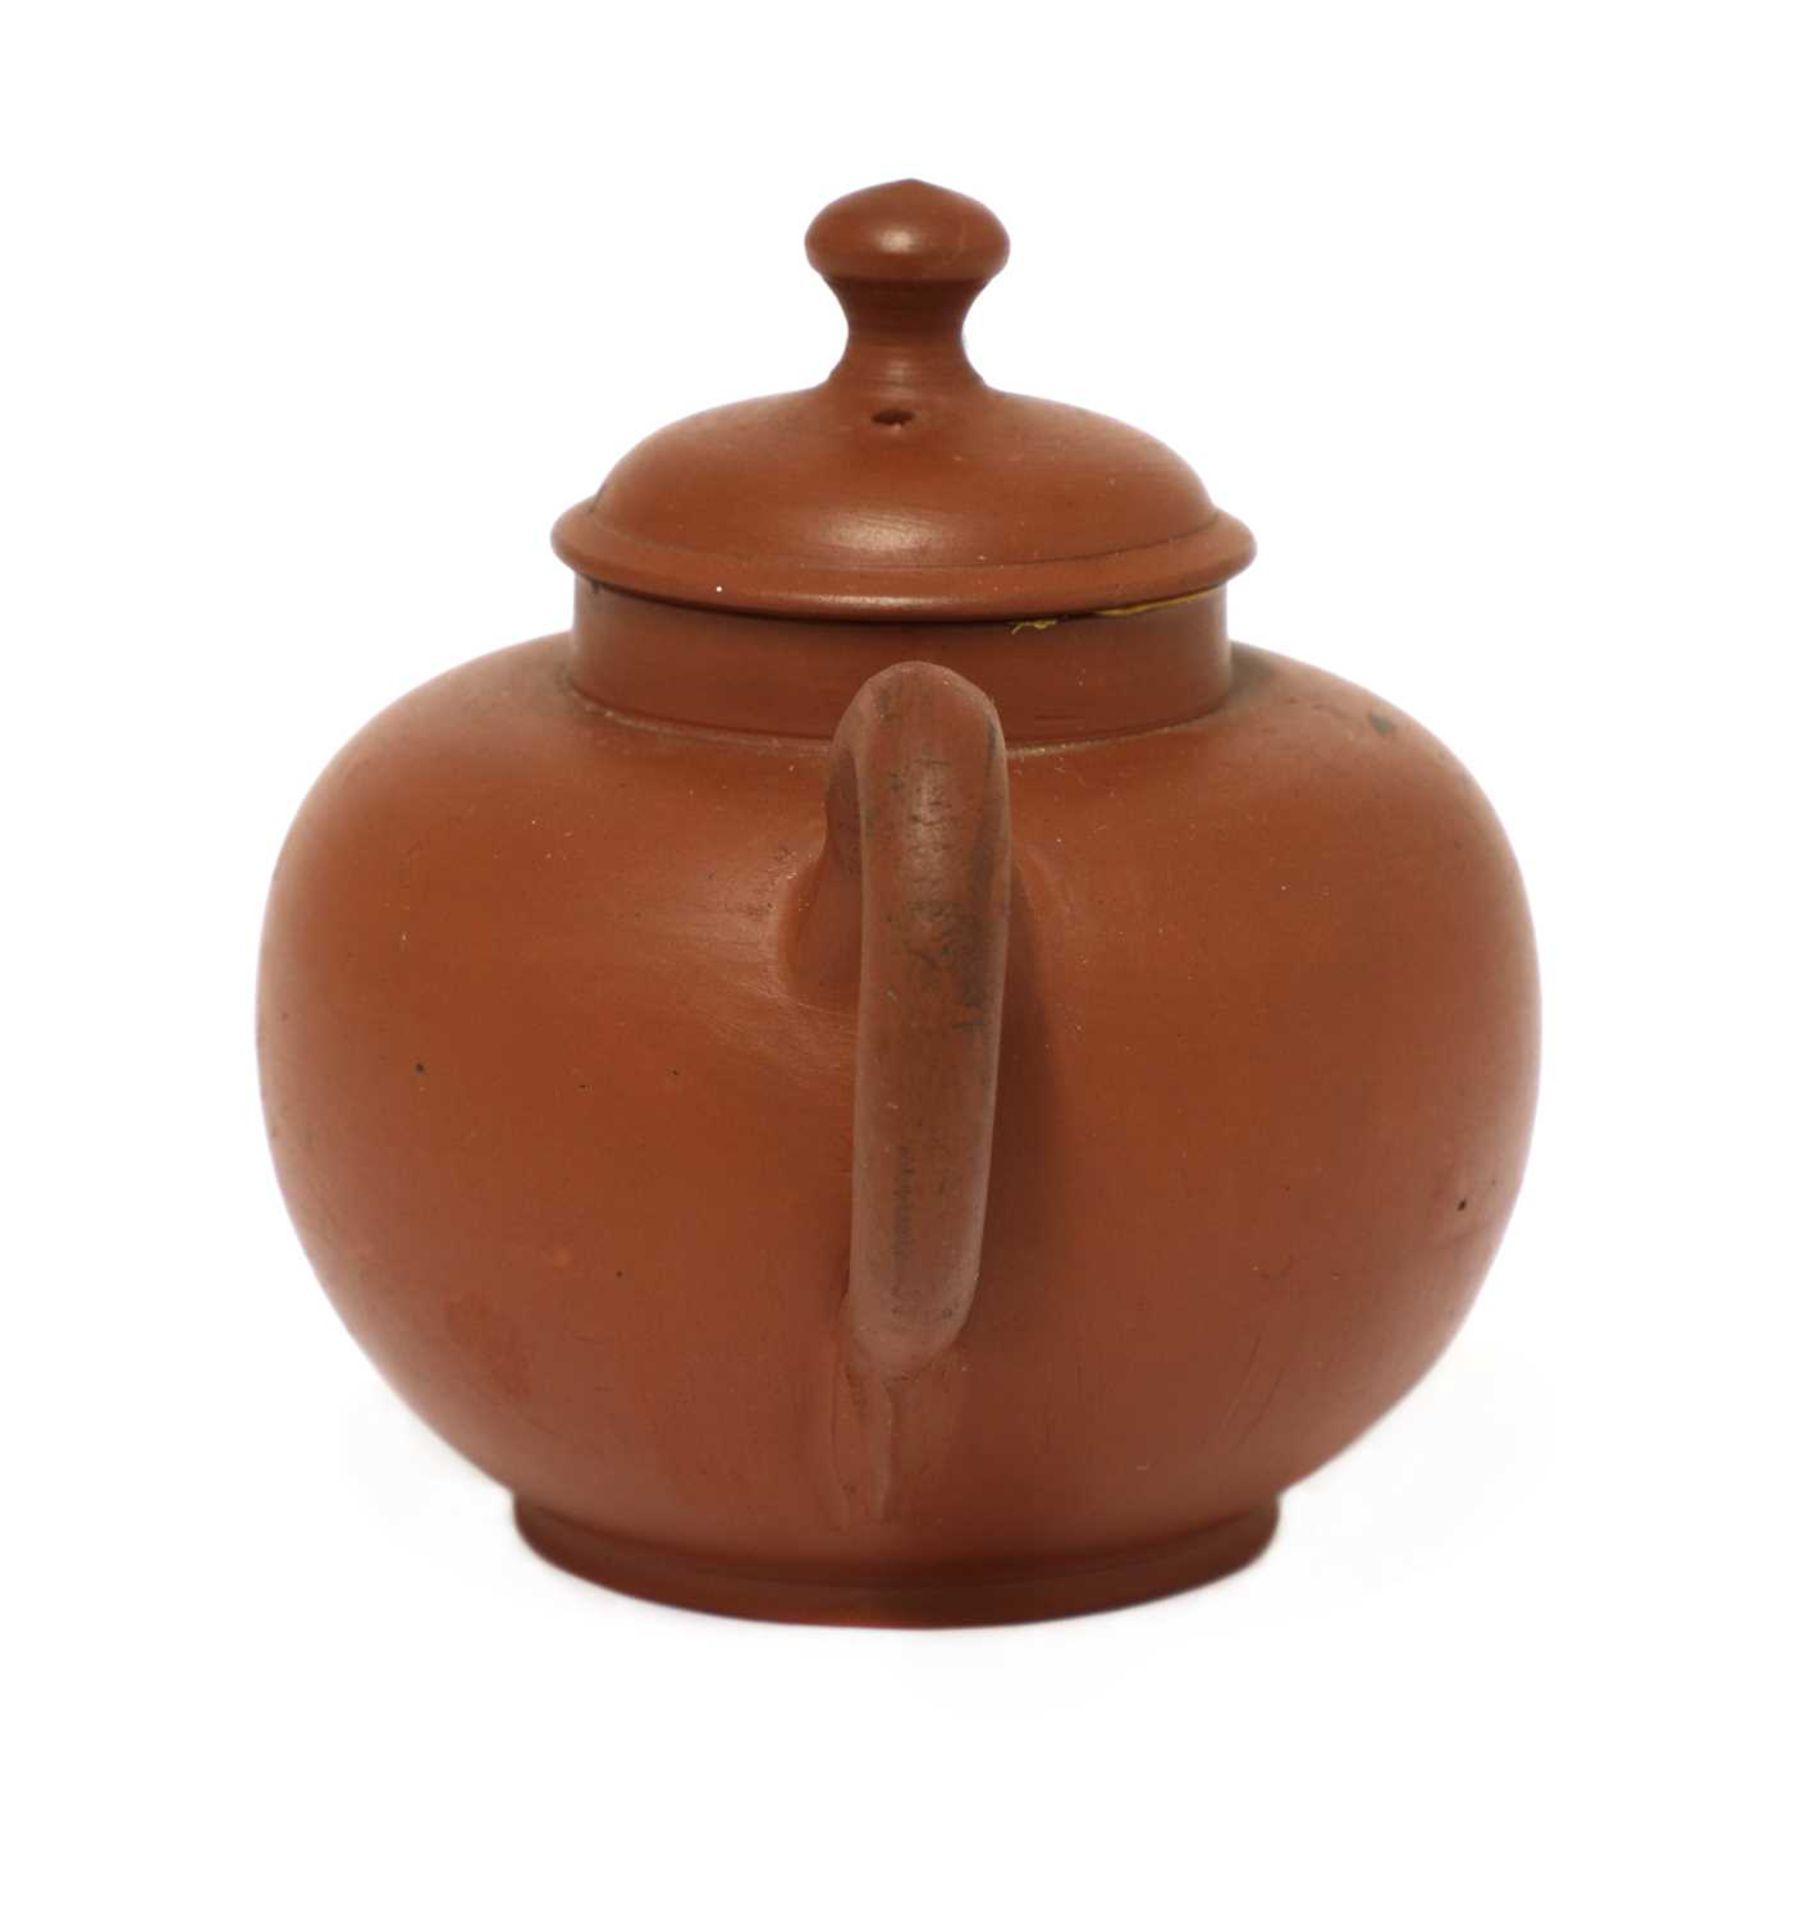 An unusual Staffordshire redware miniature globular teapot and cover, - Image 3 of 4